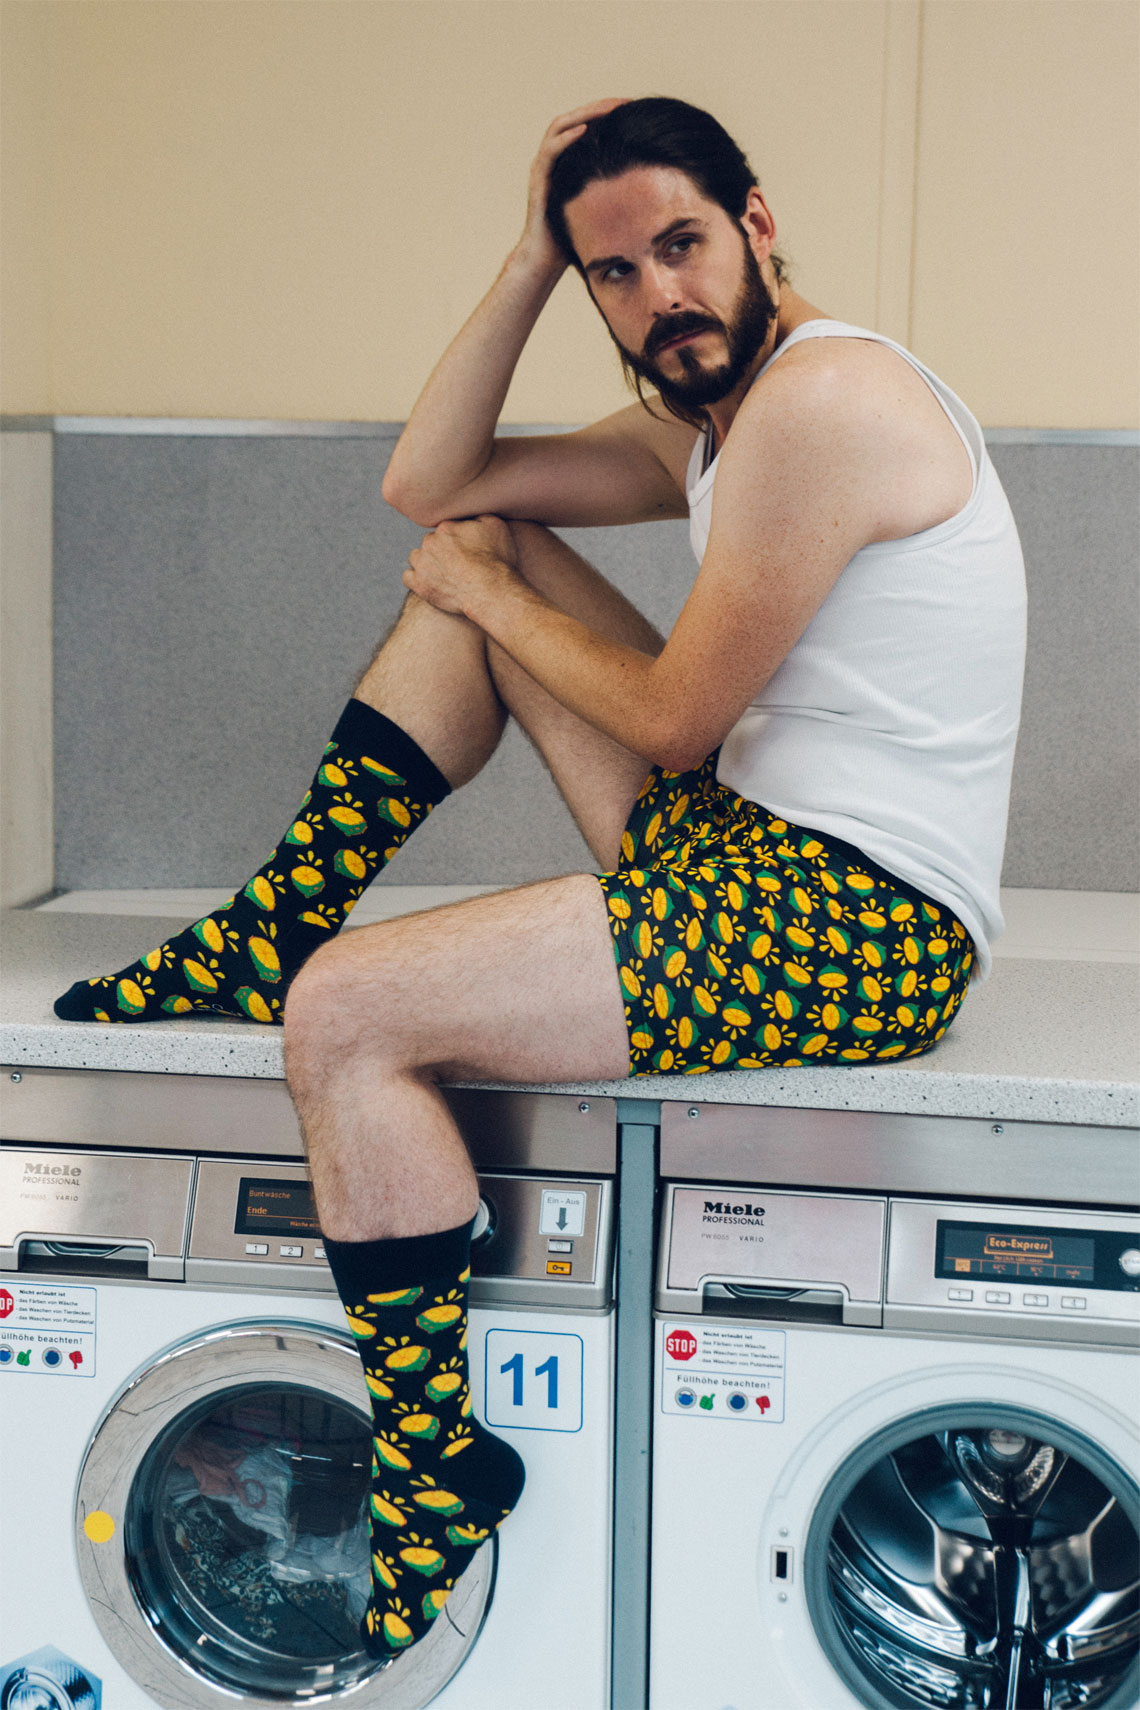 kaisers-neue-kleider-malefashion-blog-unterwaesche-happy-socks-boxer-brief